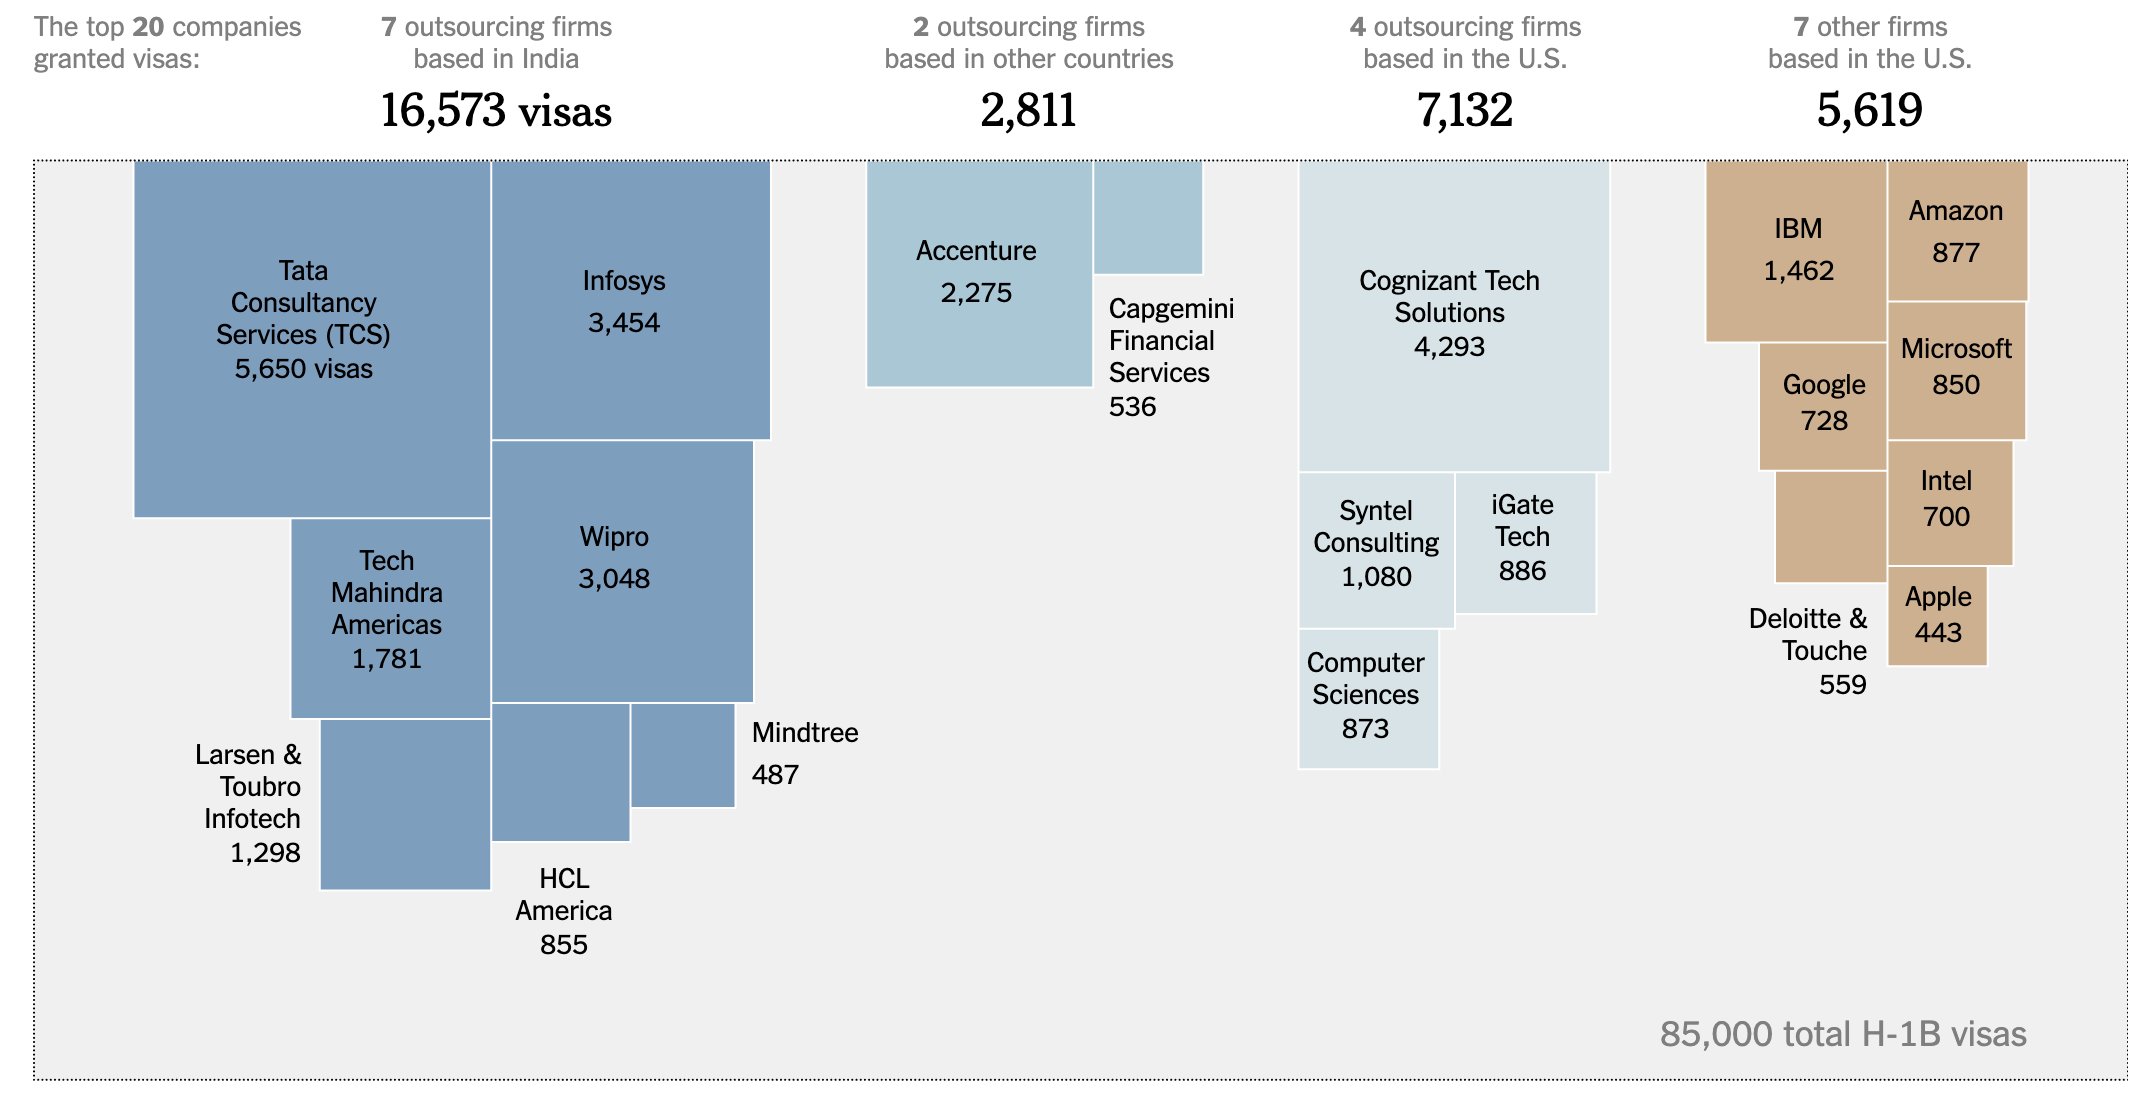 https://www.nytimes.com/interactive/2015/11/06/us/outsourcing-companies-dominate-h1b-visas.html